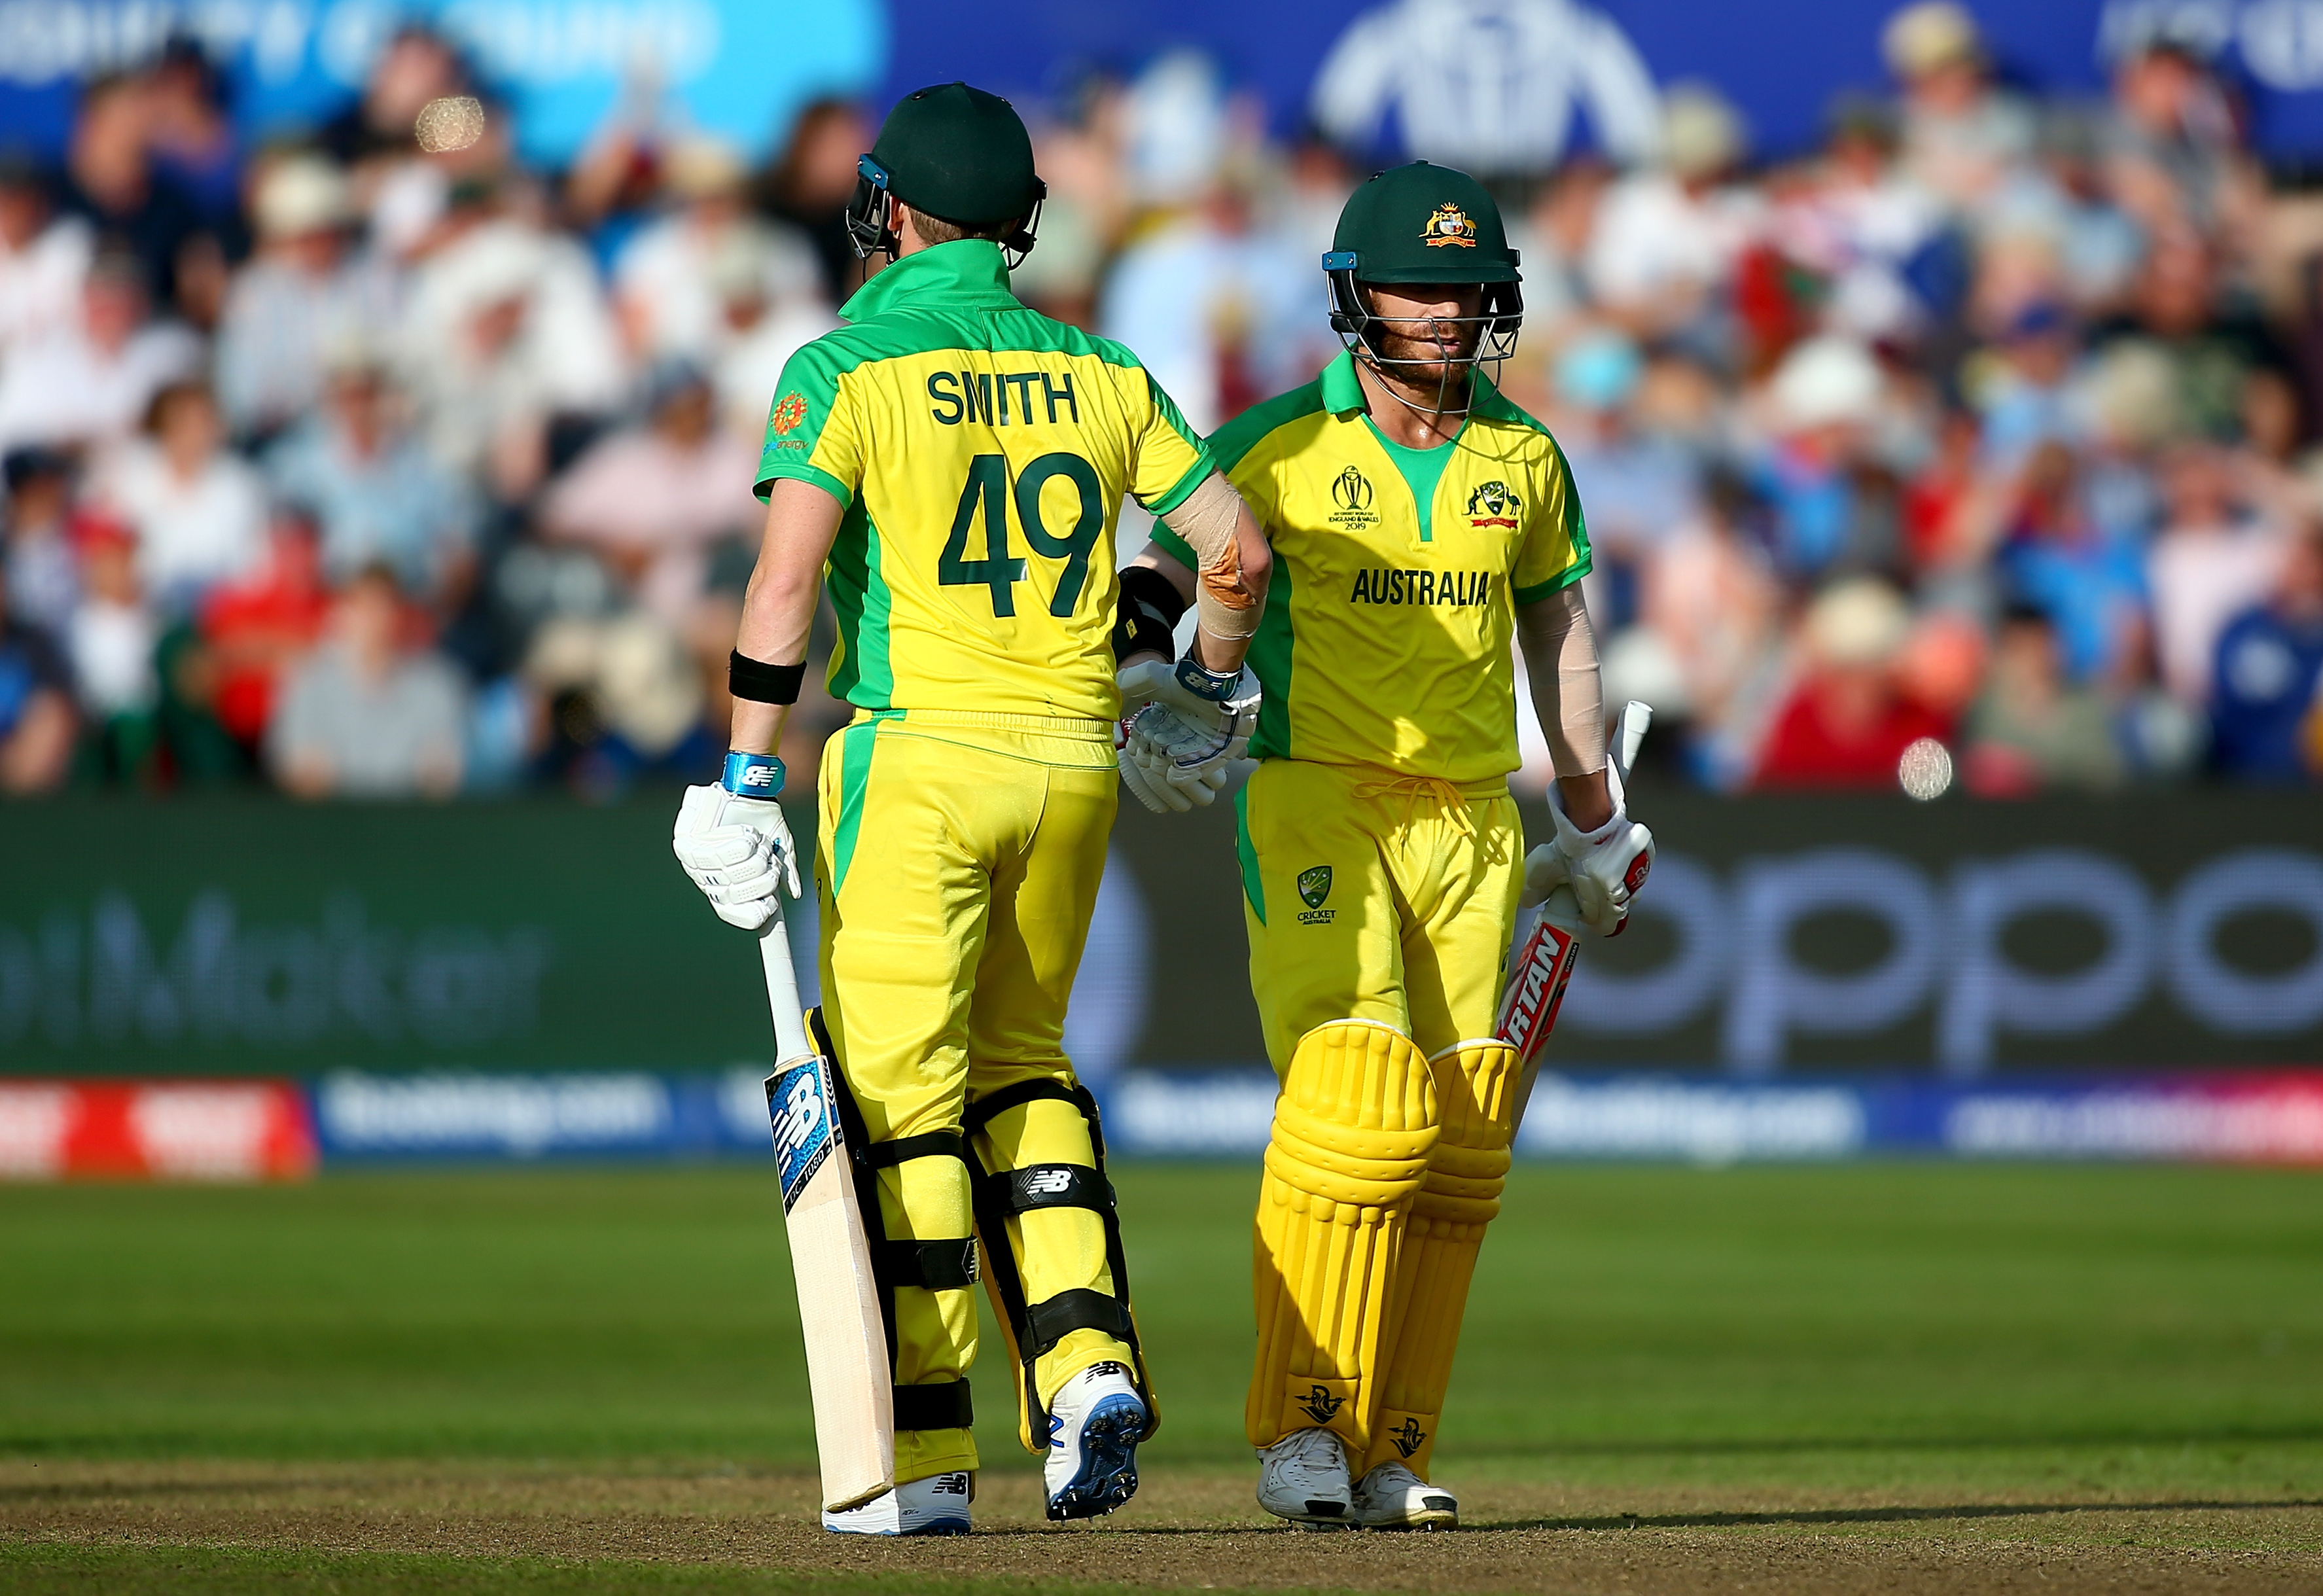 Cricket Betting Tips: Smith and Warner to show what Aussies have been missing